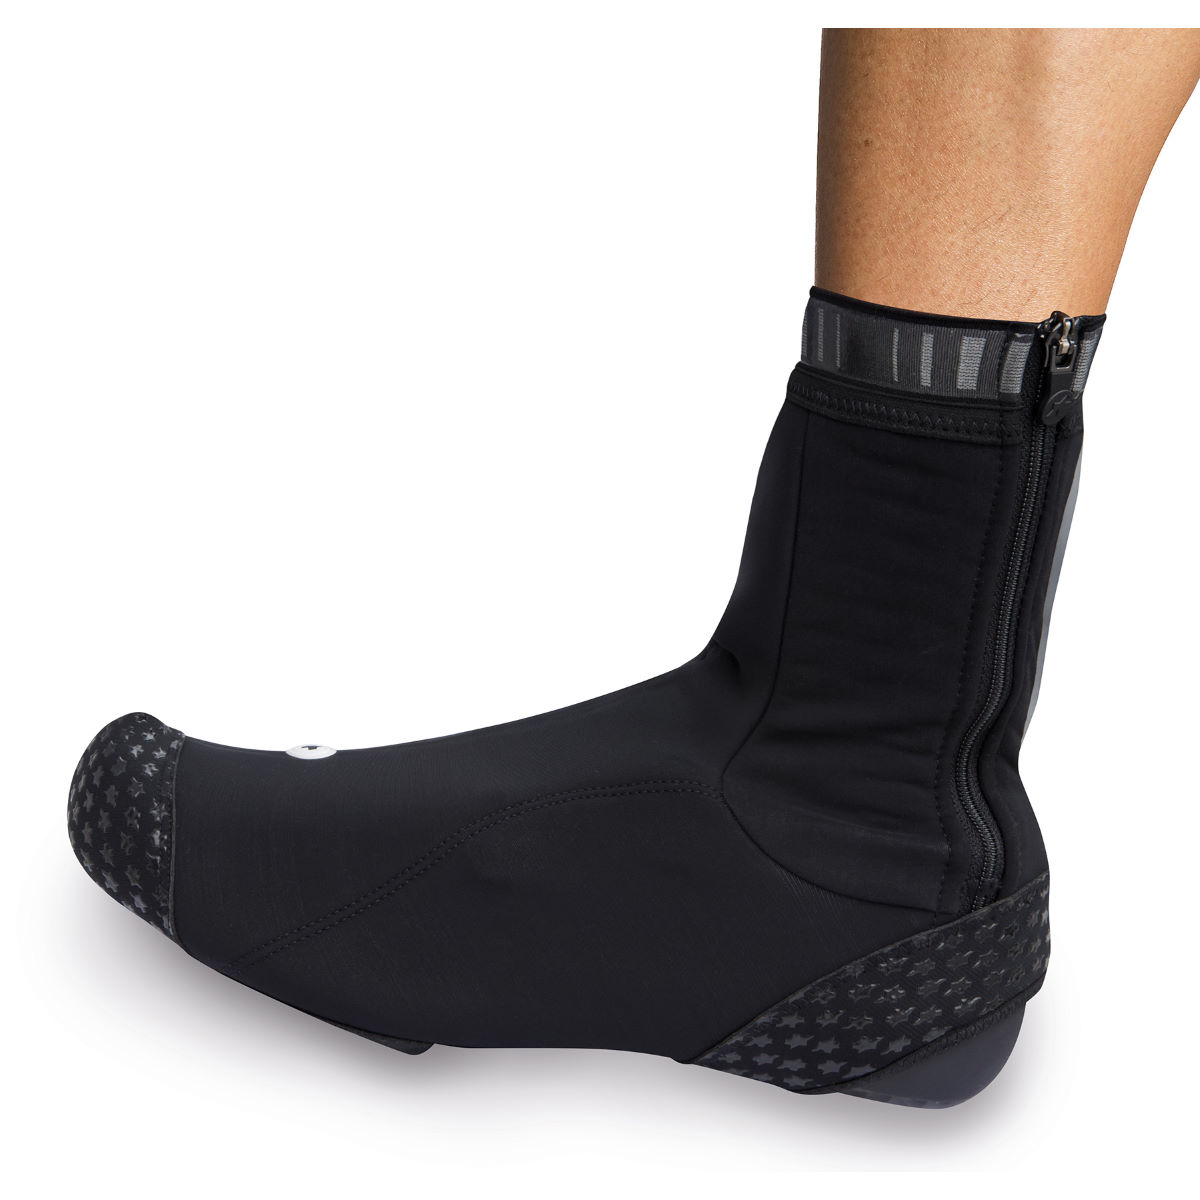 Cubrezapatillas Assos Winterbooties_S7 - Cubrezapatillas